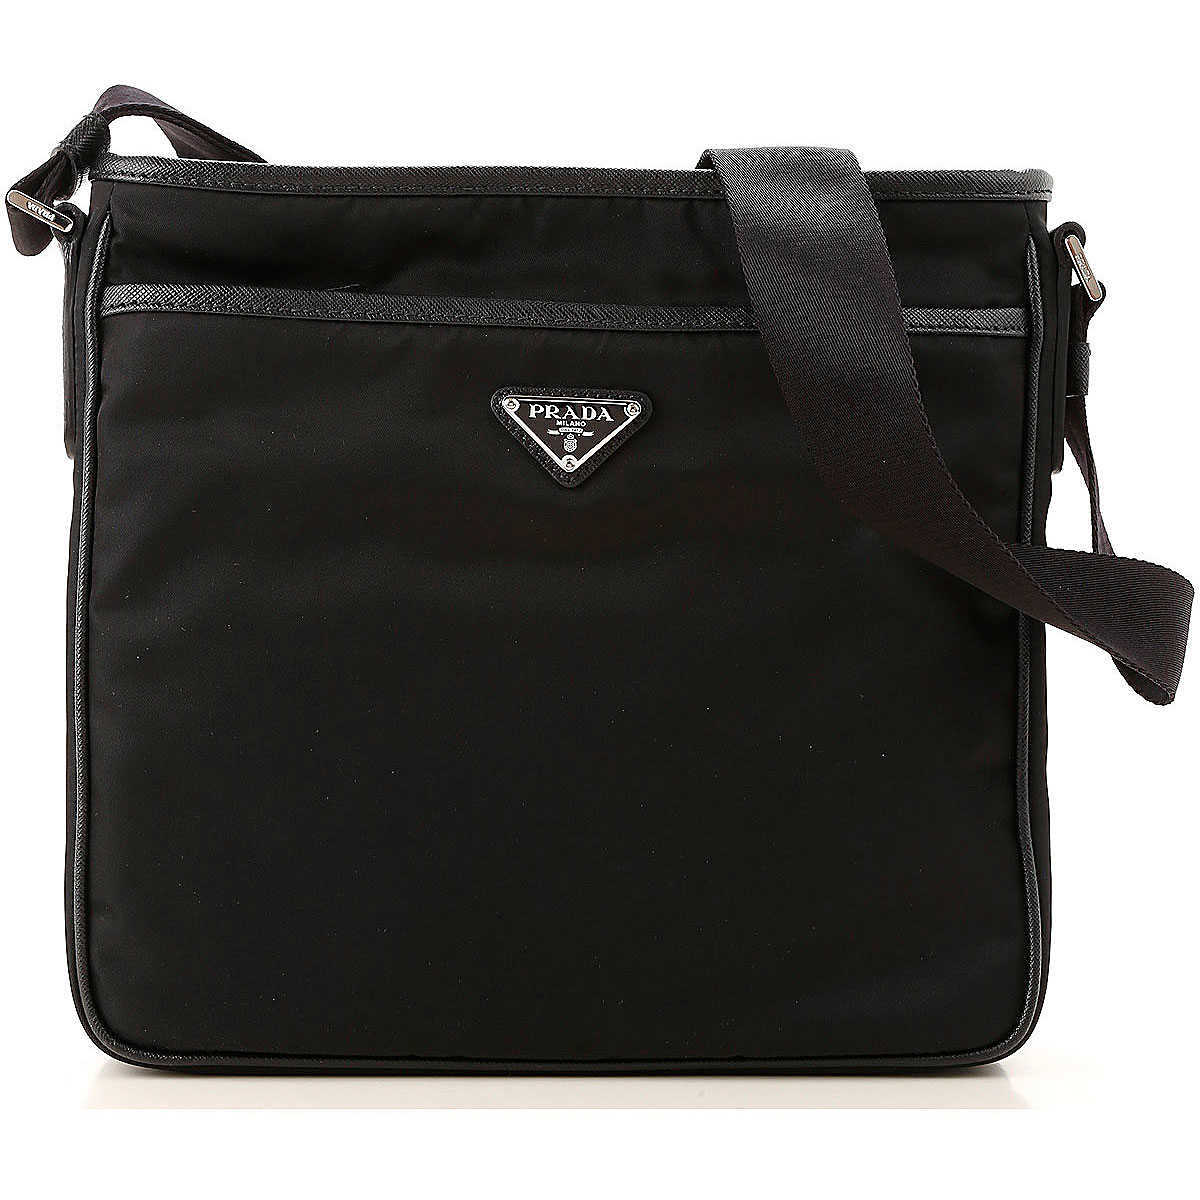 Prada Shoulder Bags Black - GOOFASH